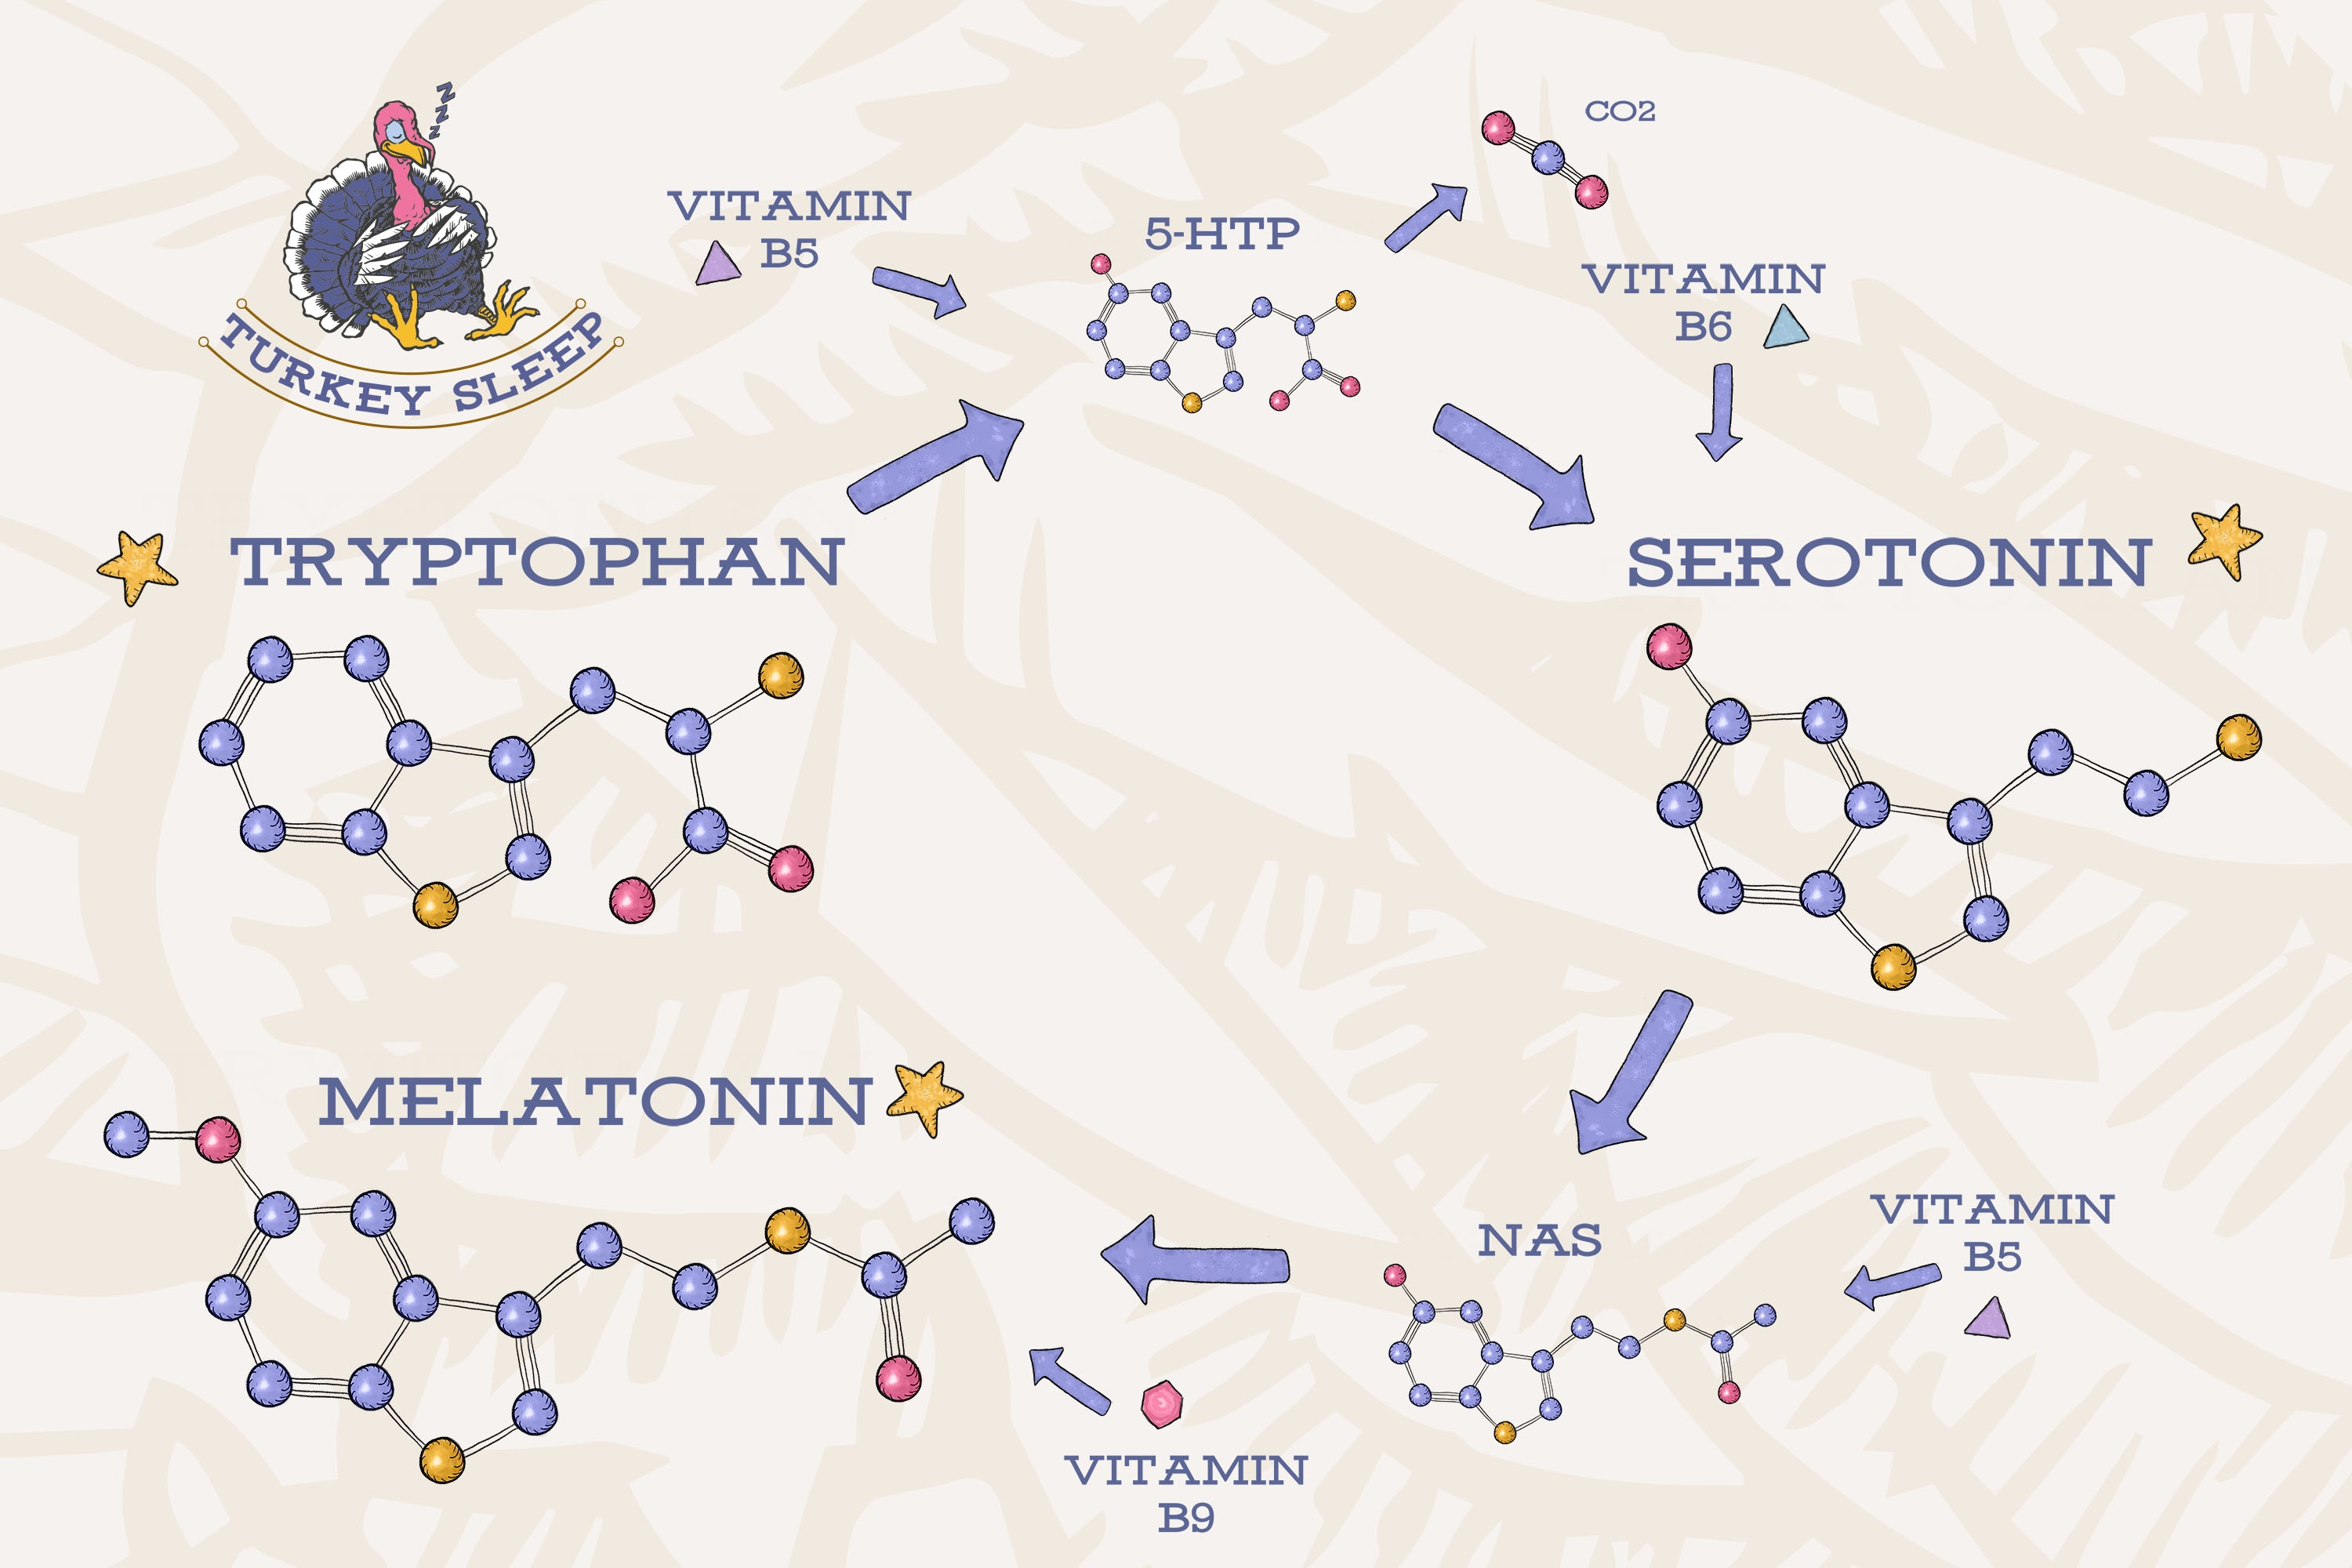 Which sleep supplement is better, Tryptophan or Melatonin? - Quora